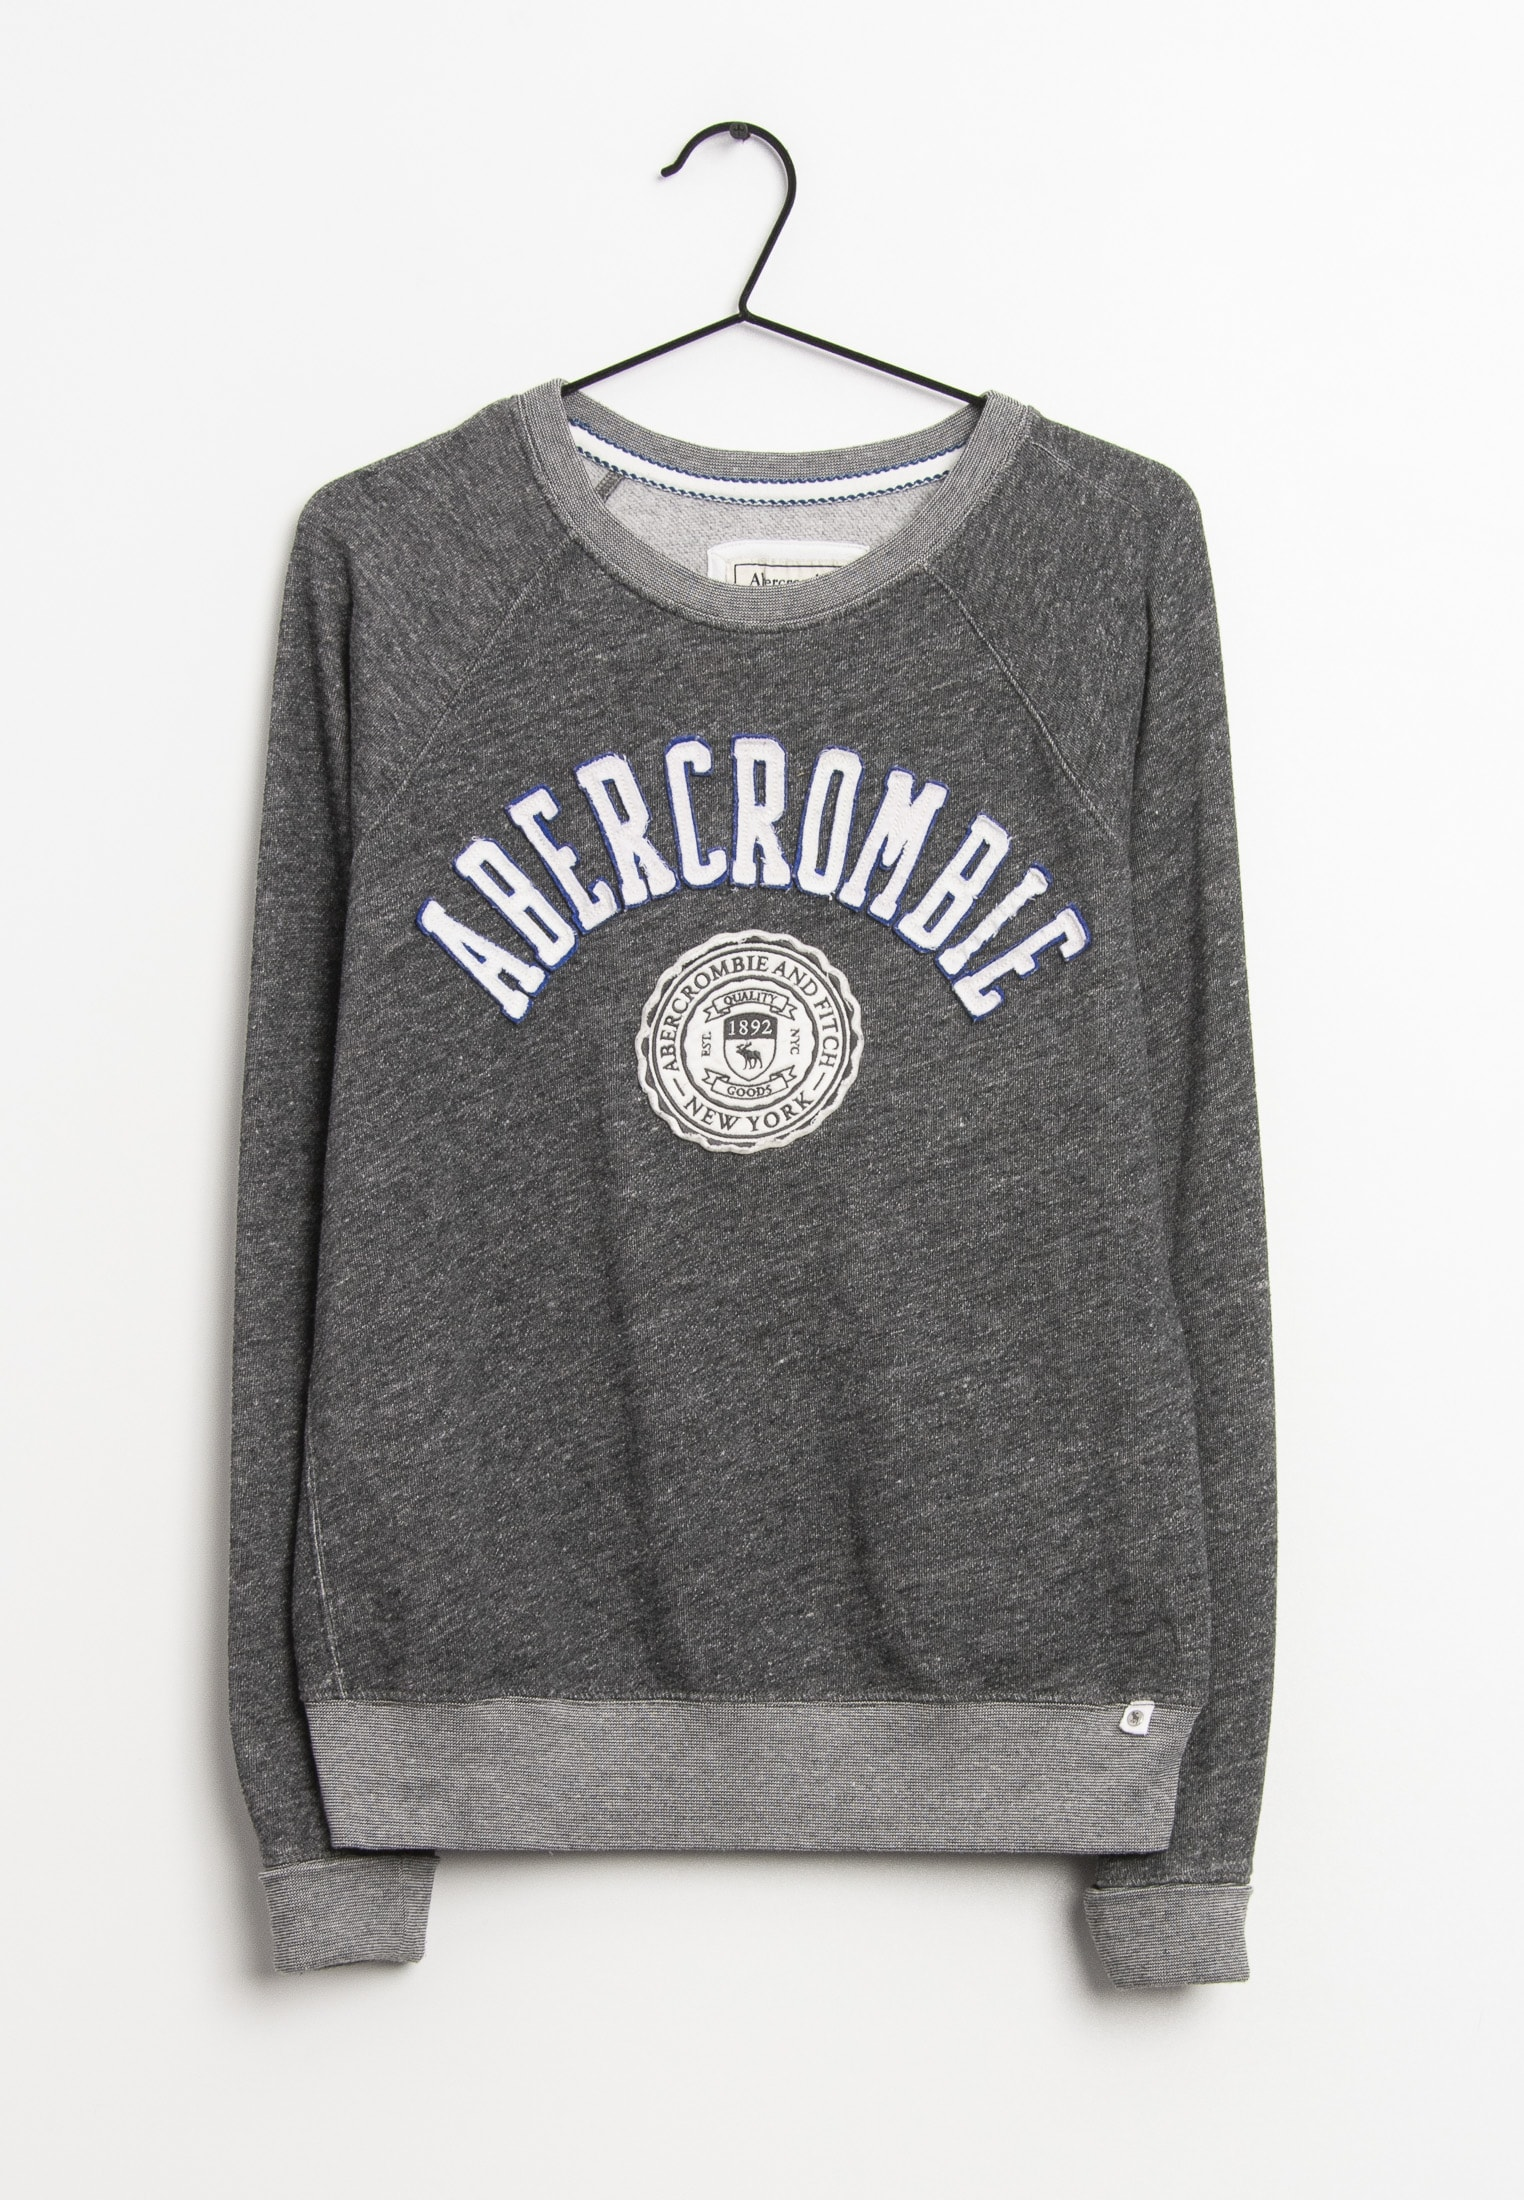 Abercrombie & Fitch Sweat / Fleece Grau Gr.S